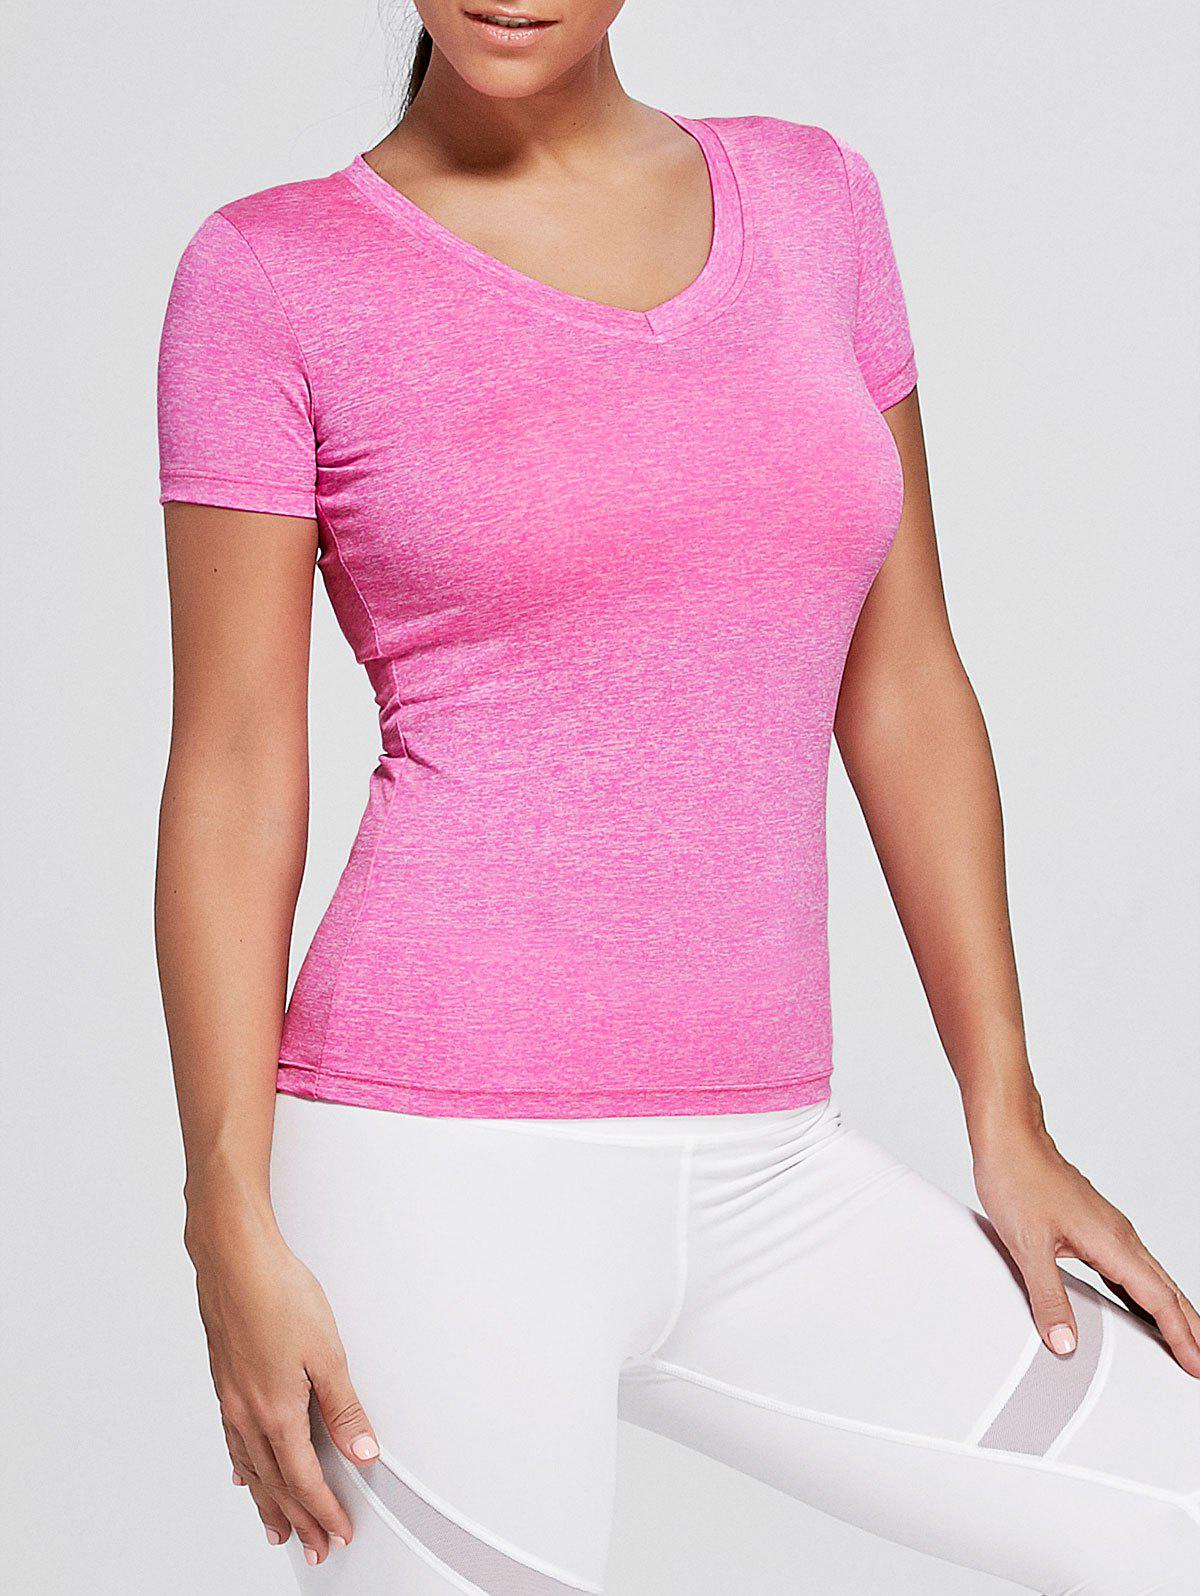 Breathable V Neck Sports T-shirt - TUTTI FRUTTI 2XL